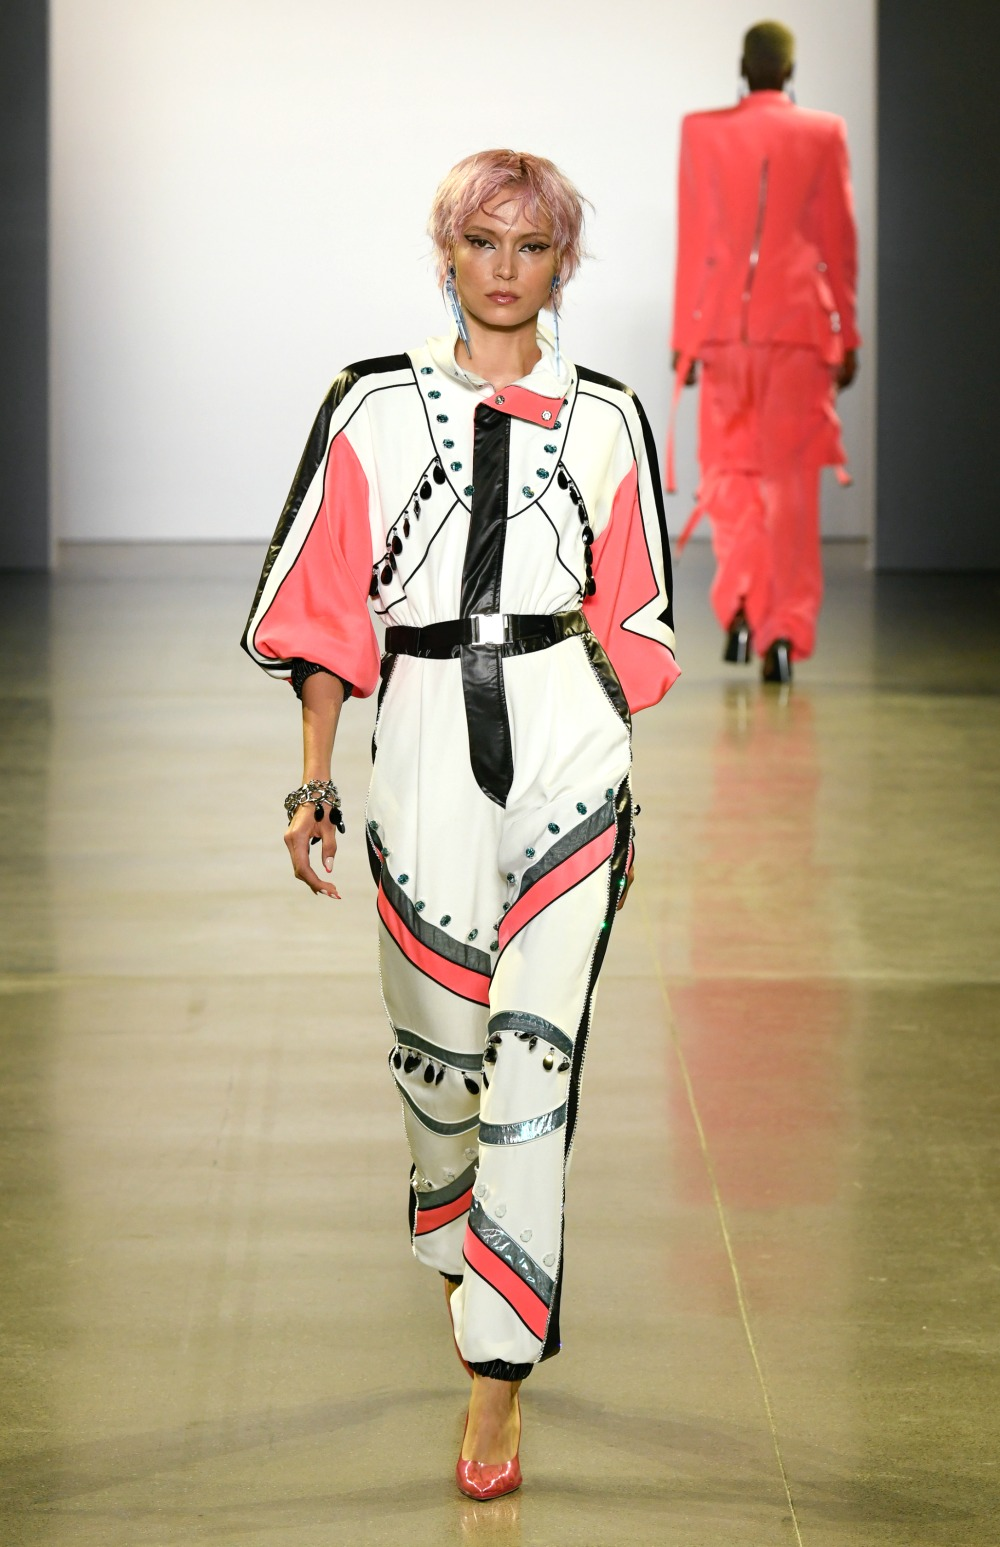 Victoria Hayes Spring 2020 Collection Runway I DreaminLace.com #NYFW #VictoriaHayes #DesignerFashion #Runway